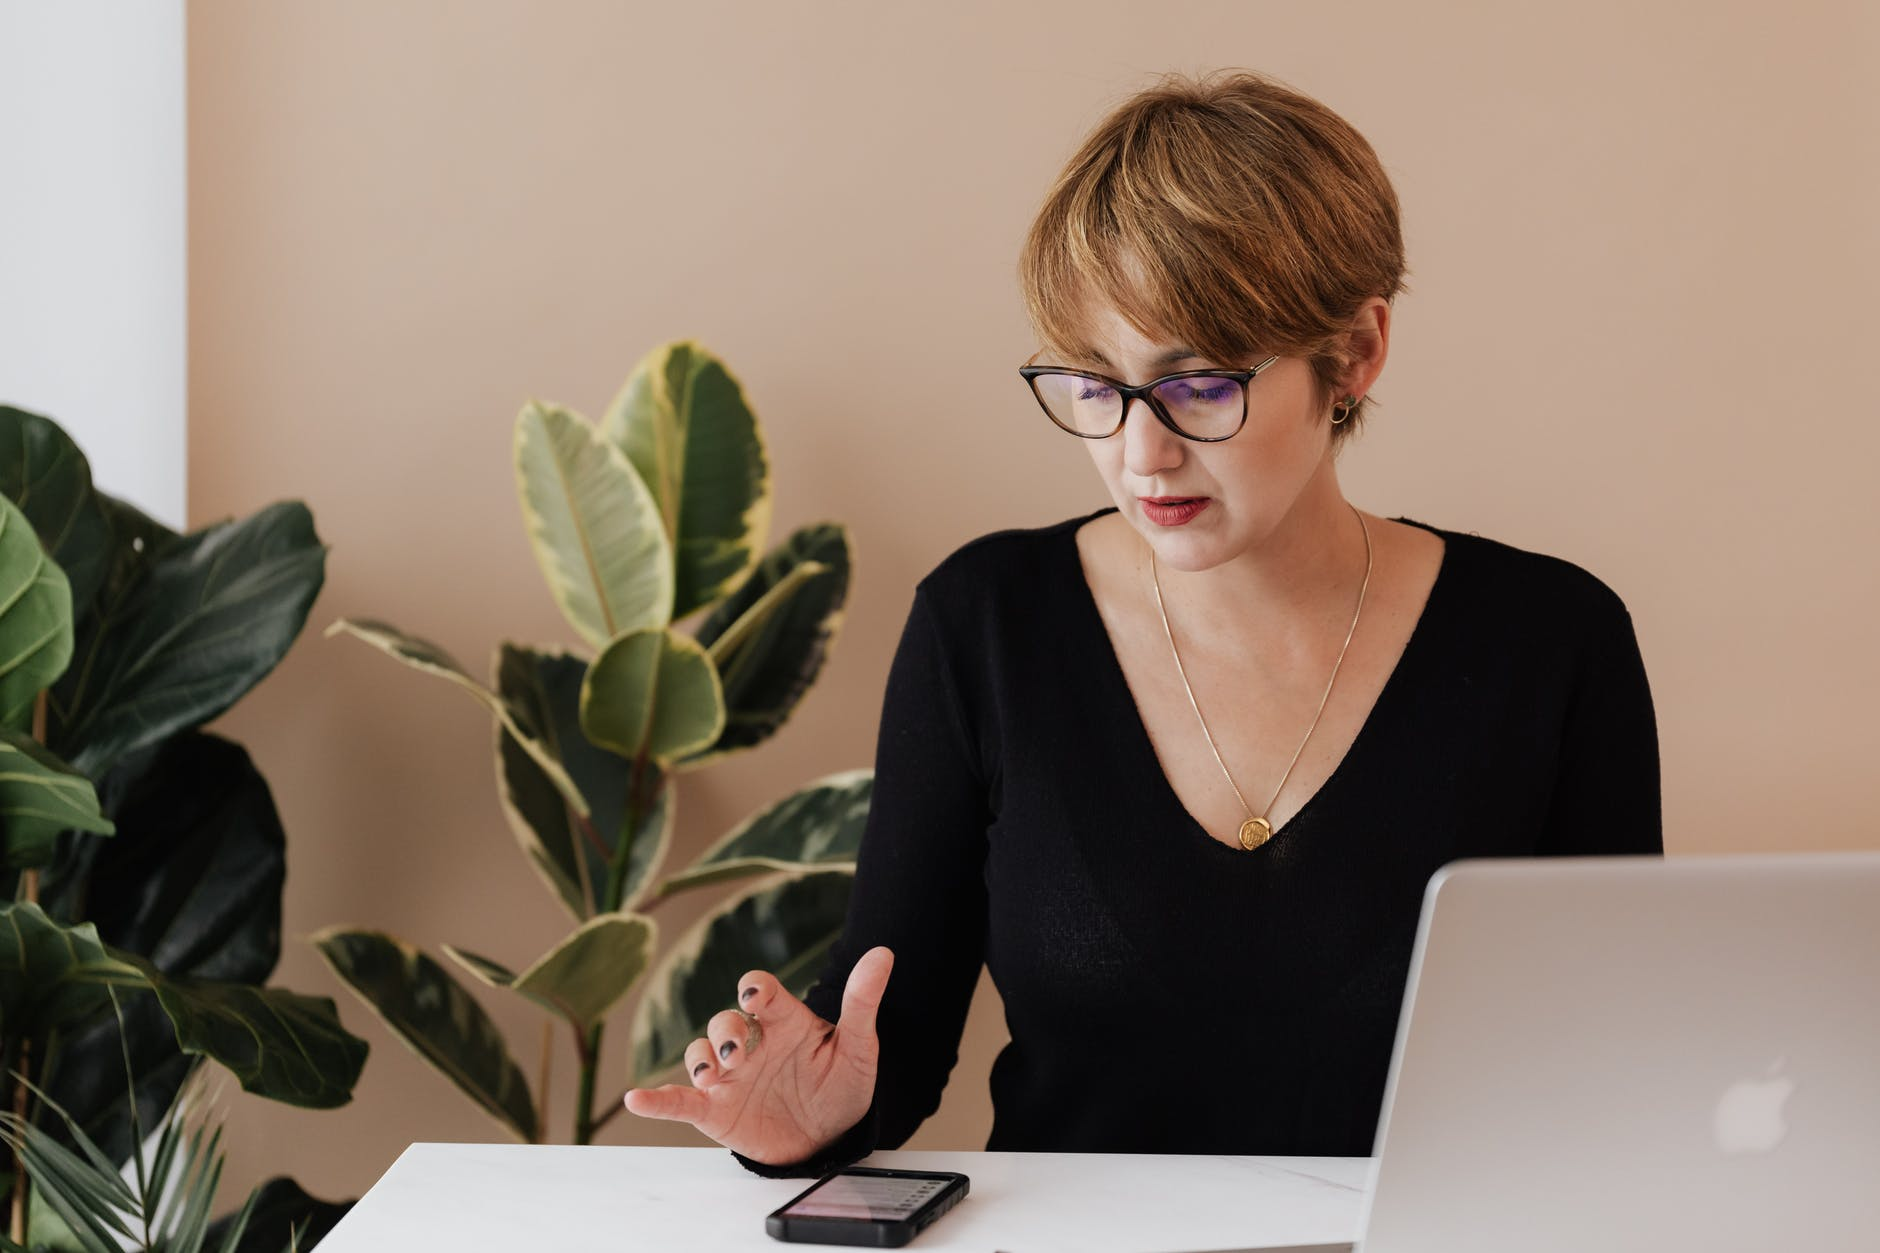 serious woman using mobile phone while working in office with laptop